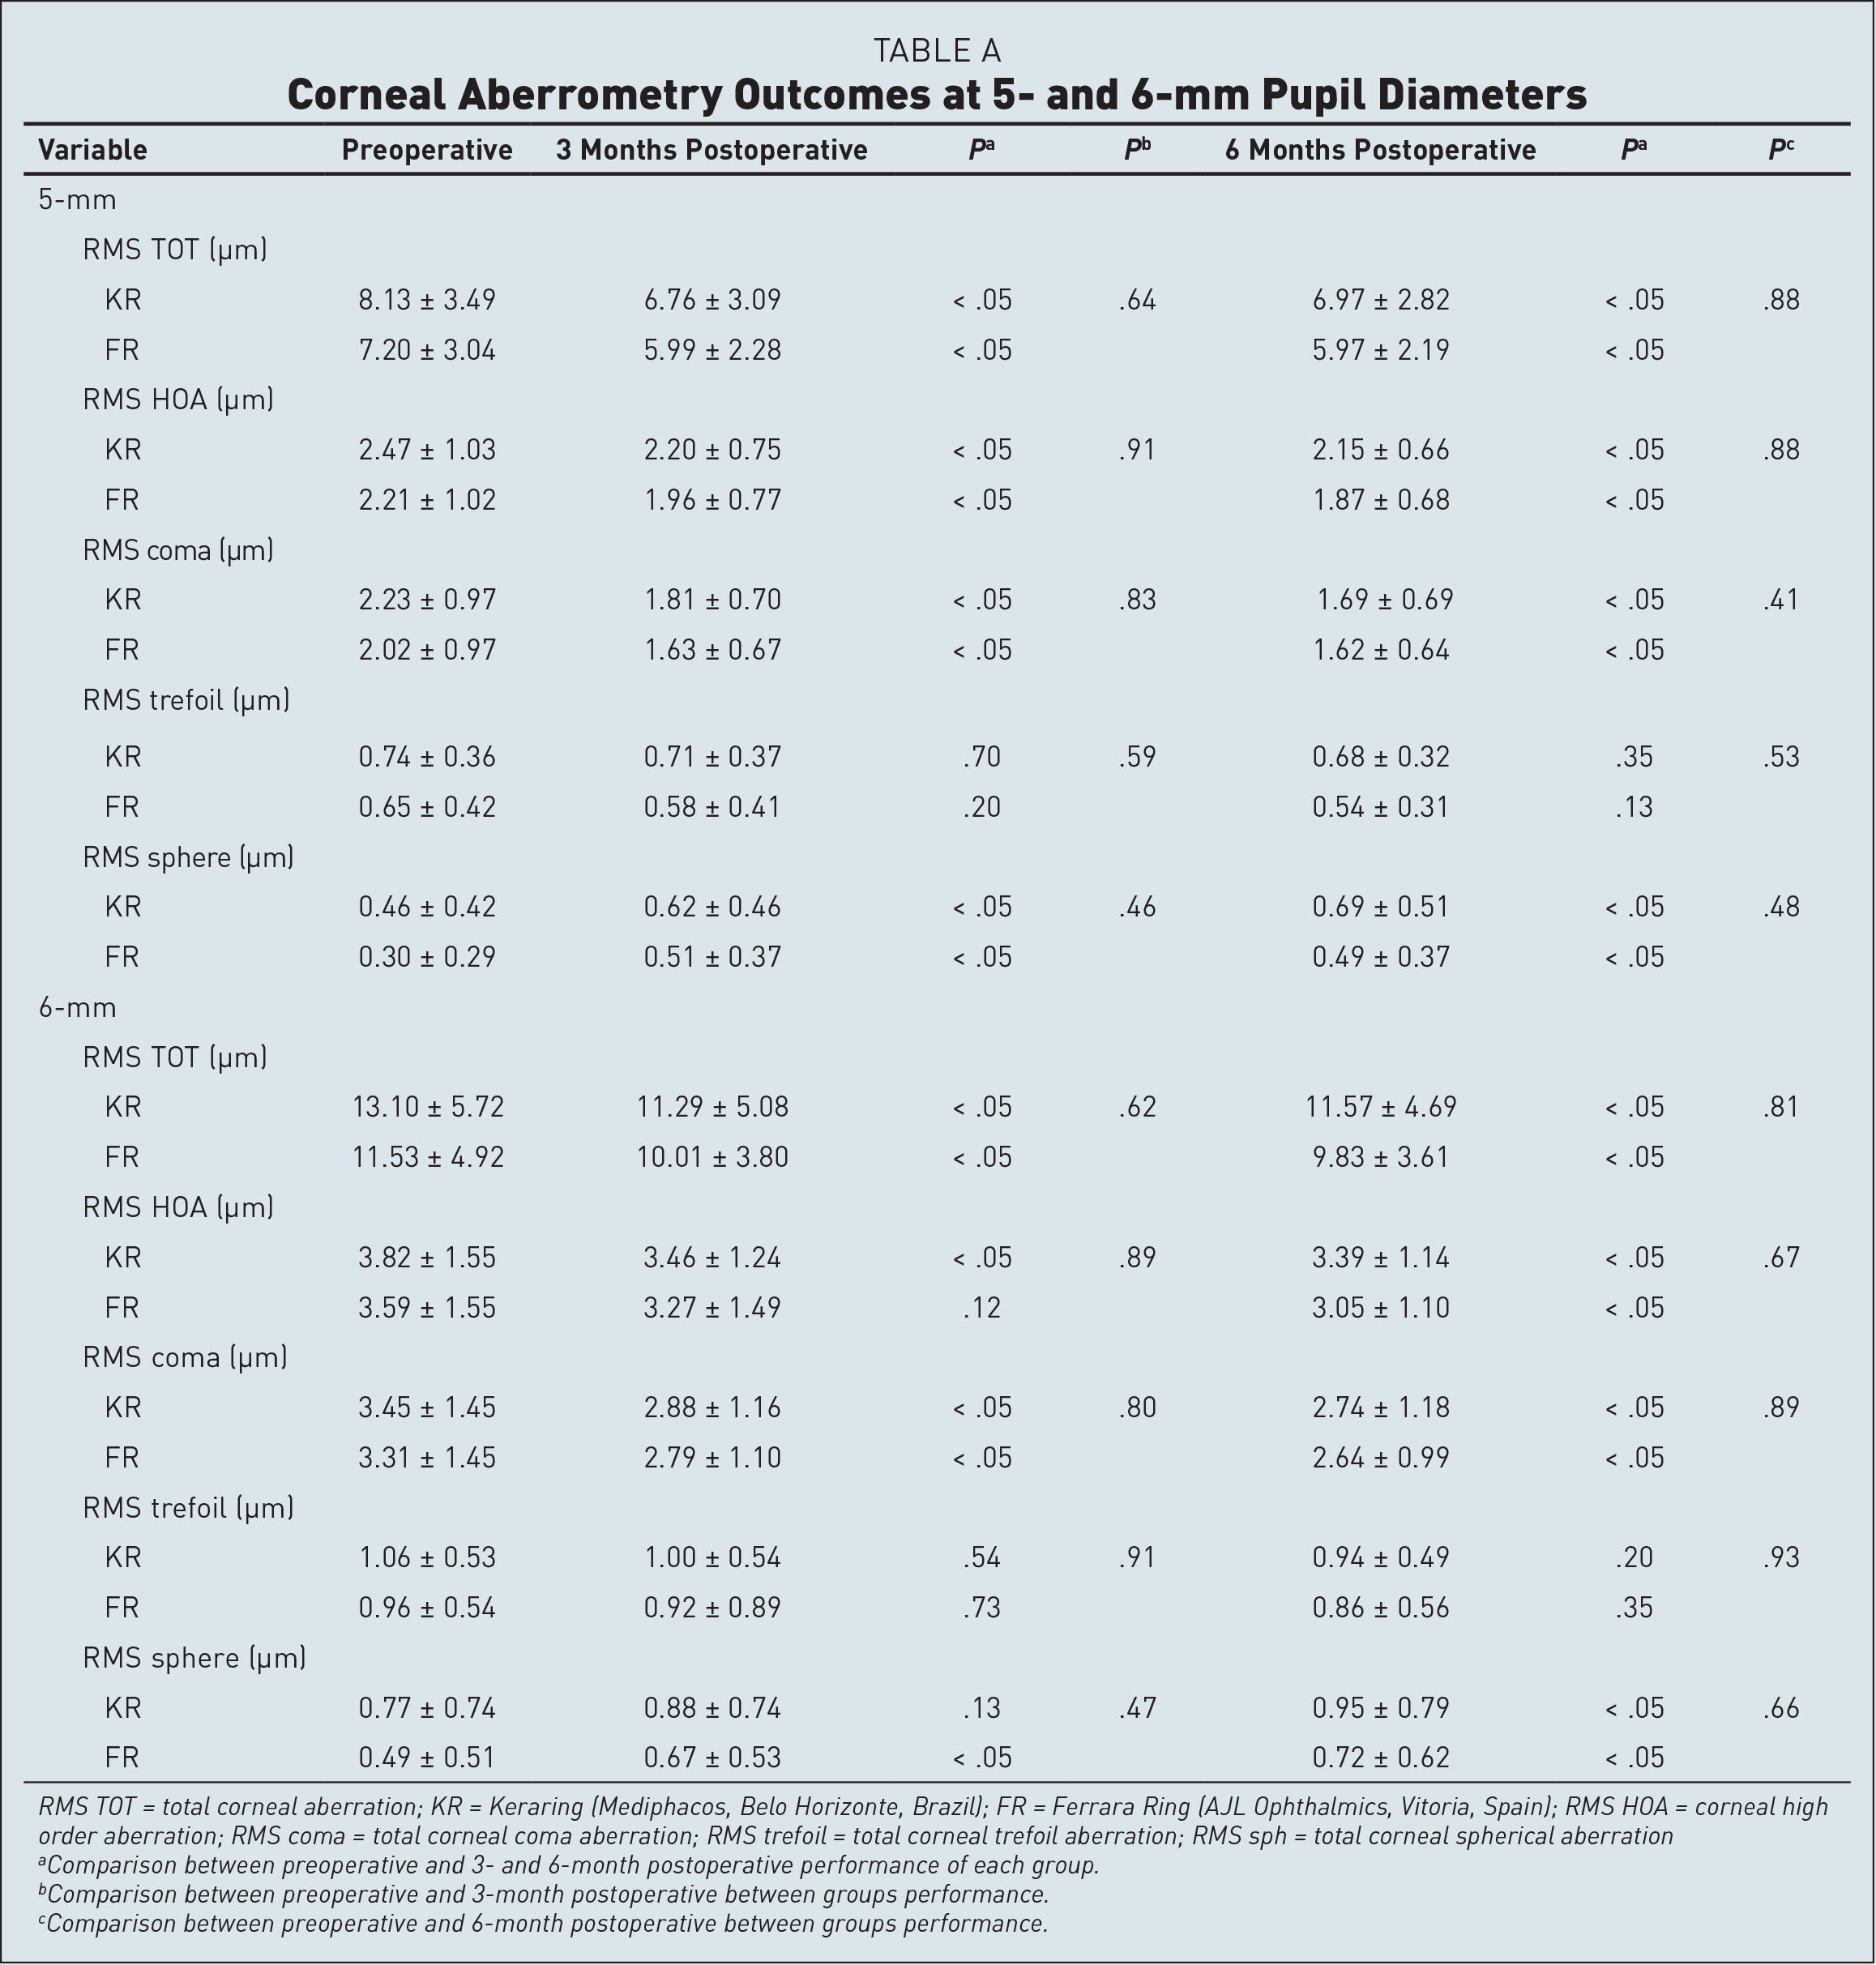 Corneal Aberrometry Outcomes at 5- and 6-mm Pupil Diameters